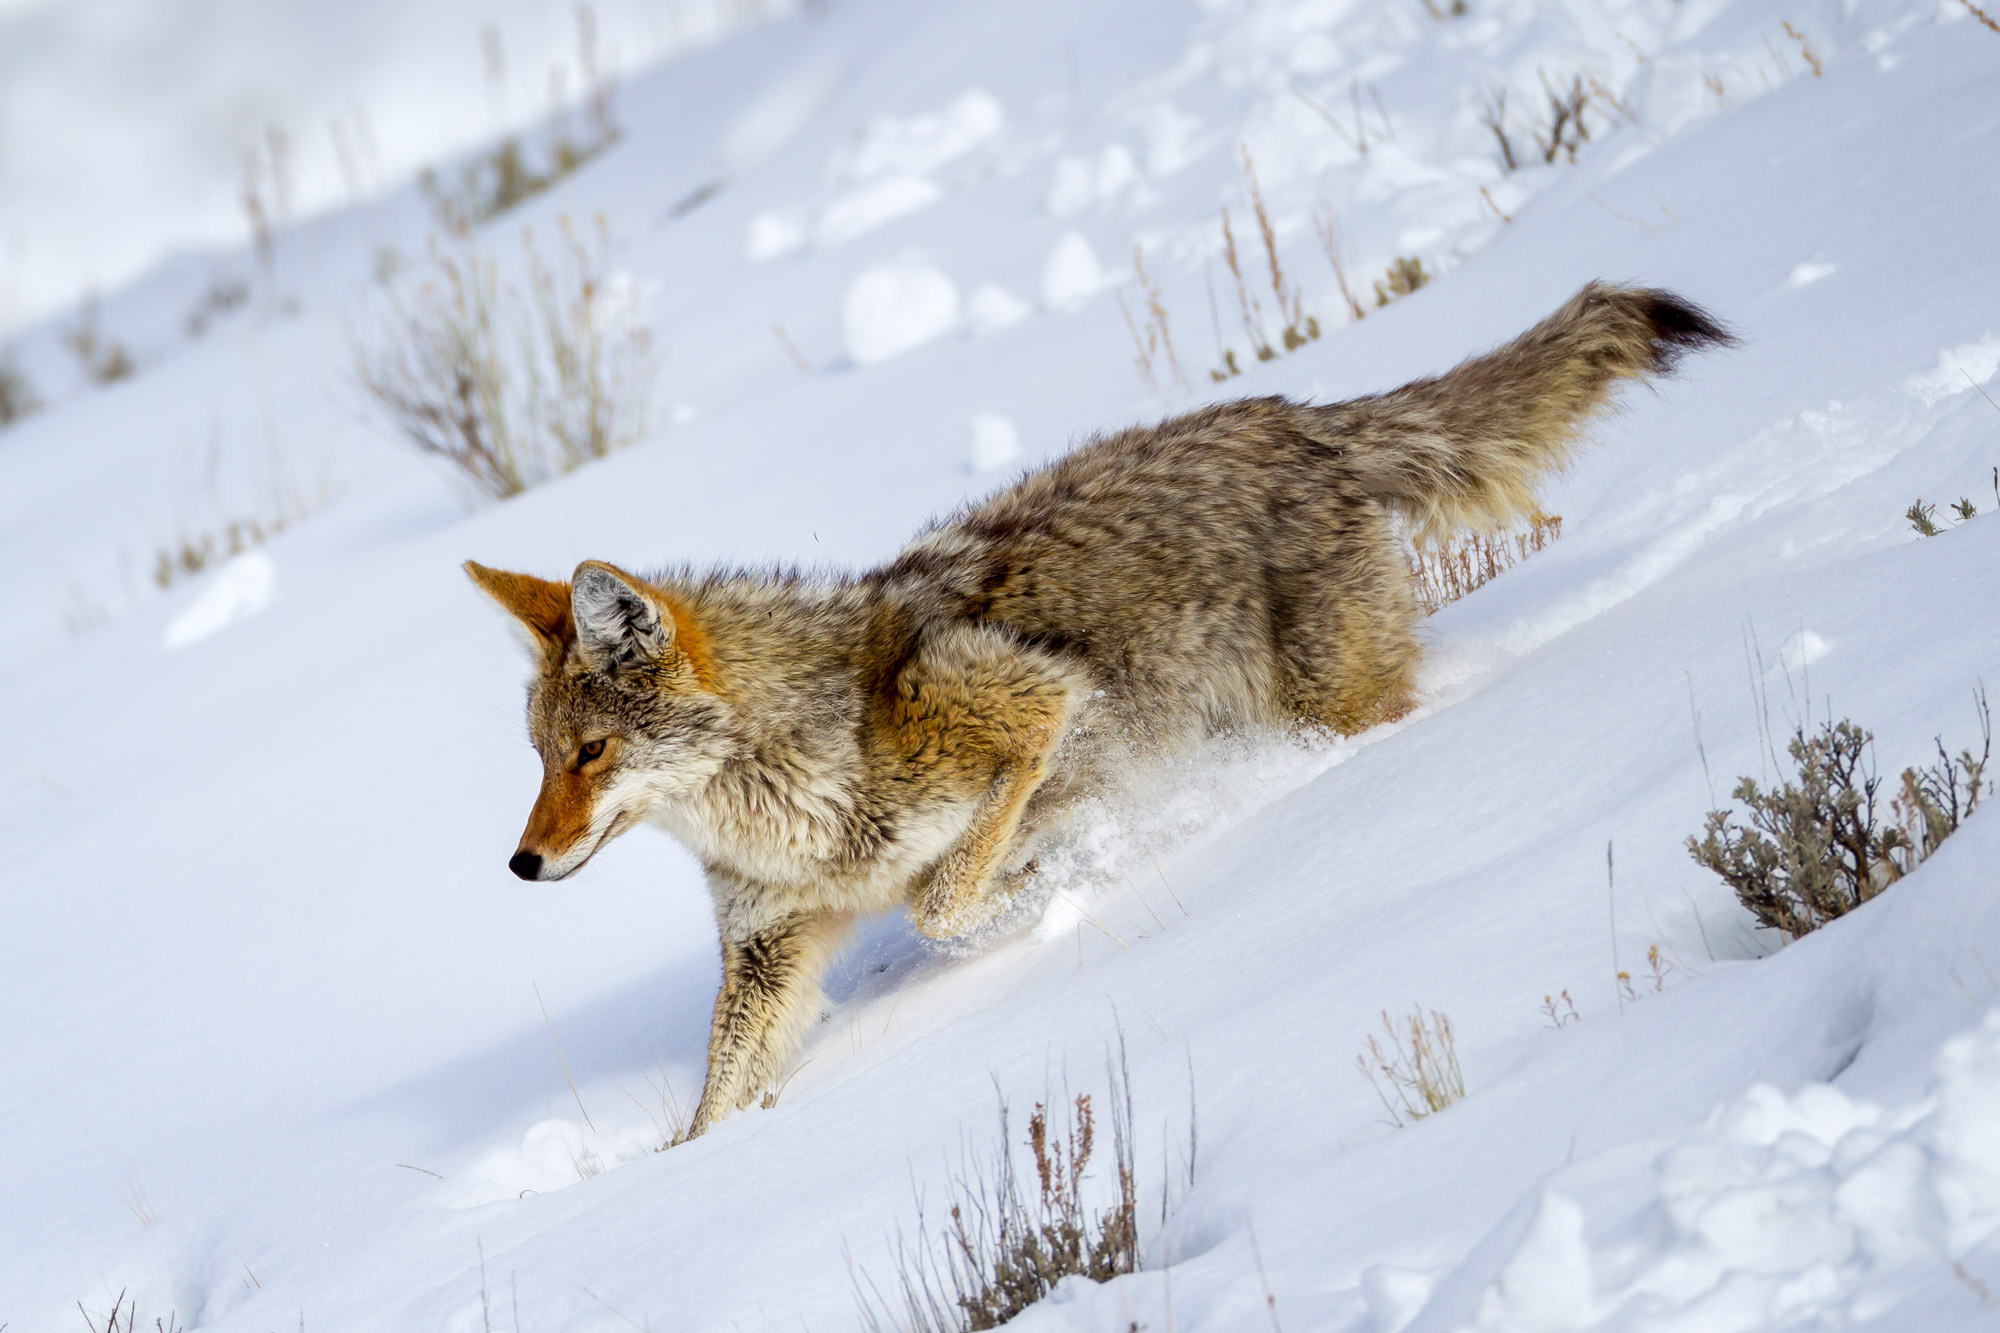 Coyote, Winter, Yellowstone, Wyoming, limited edition, photograph, fine art, wildlife, photo